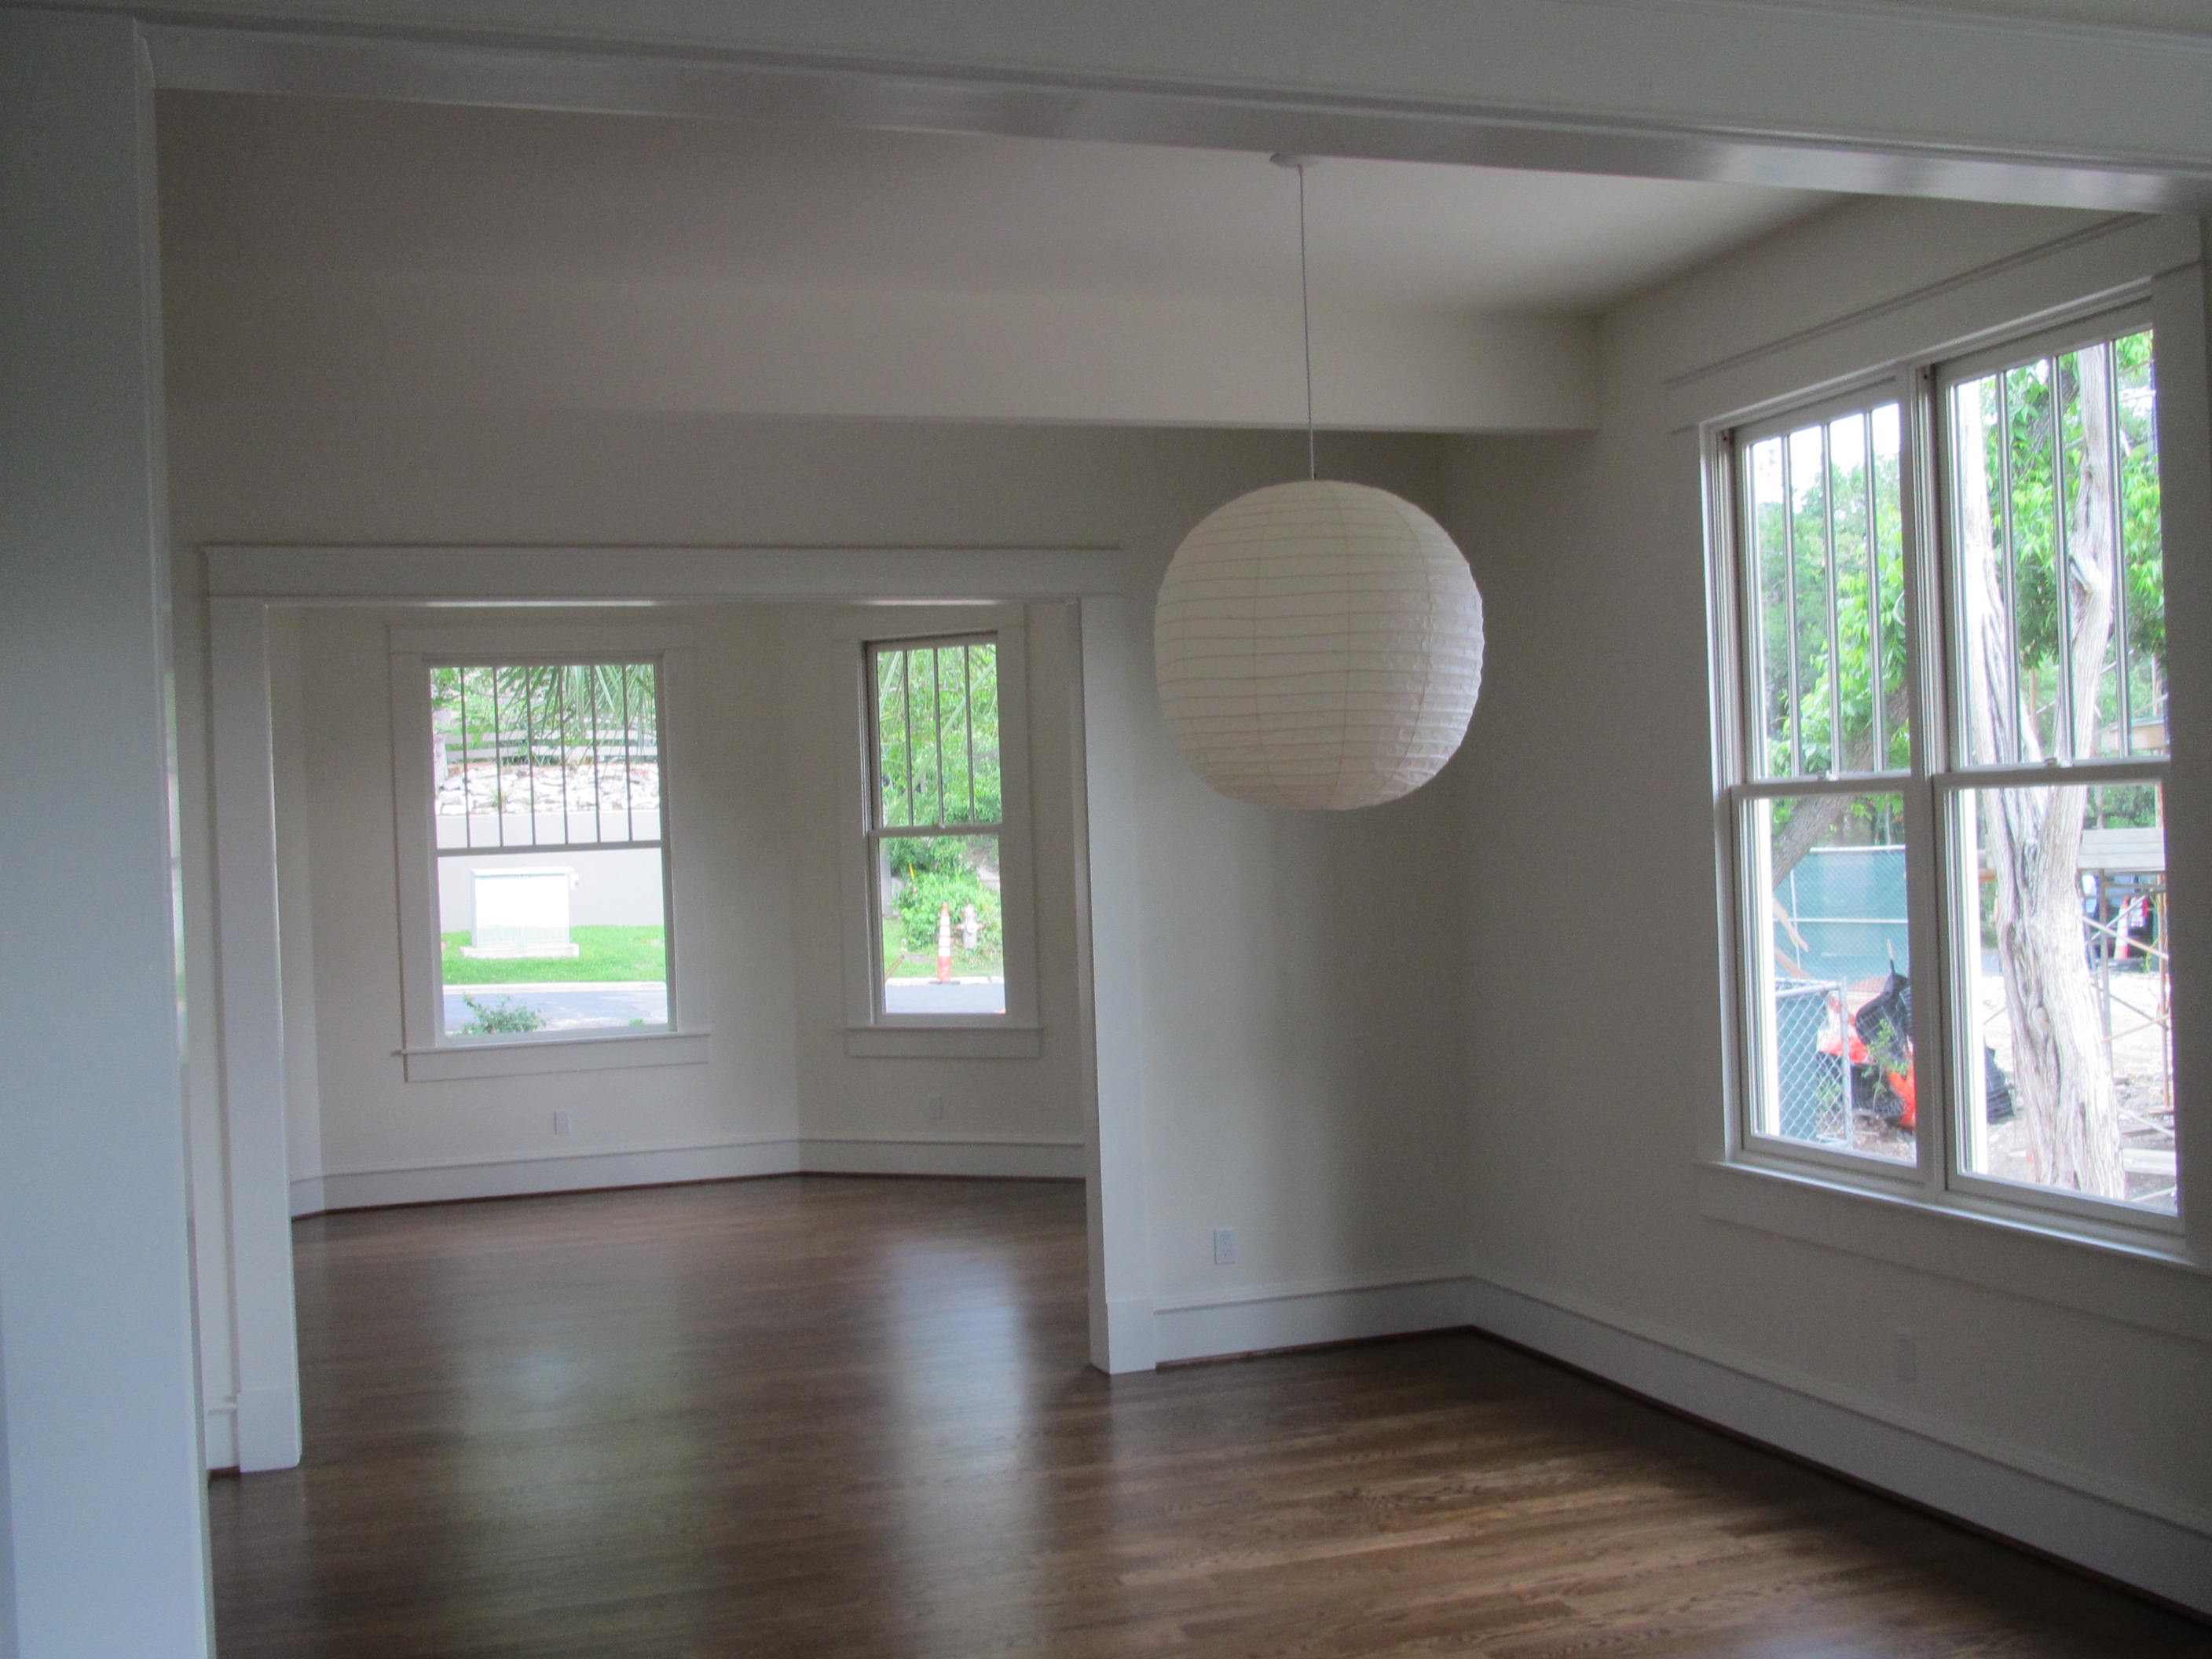 Transition to dining area